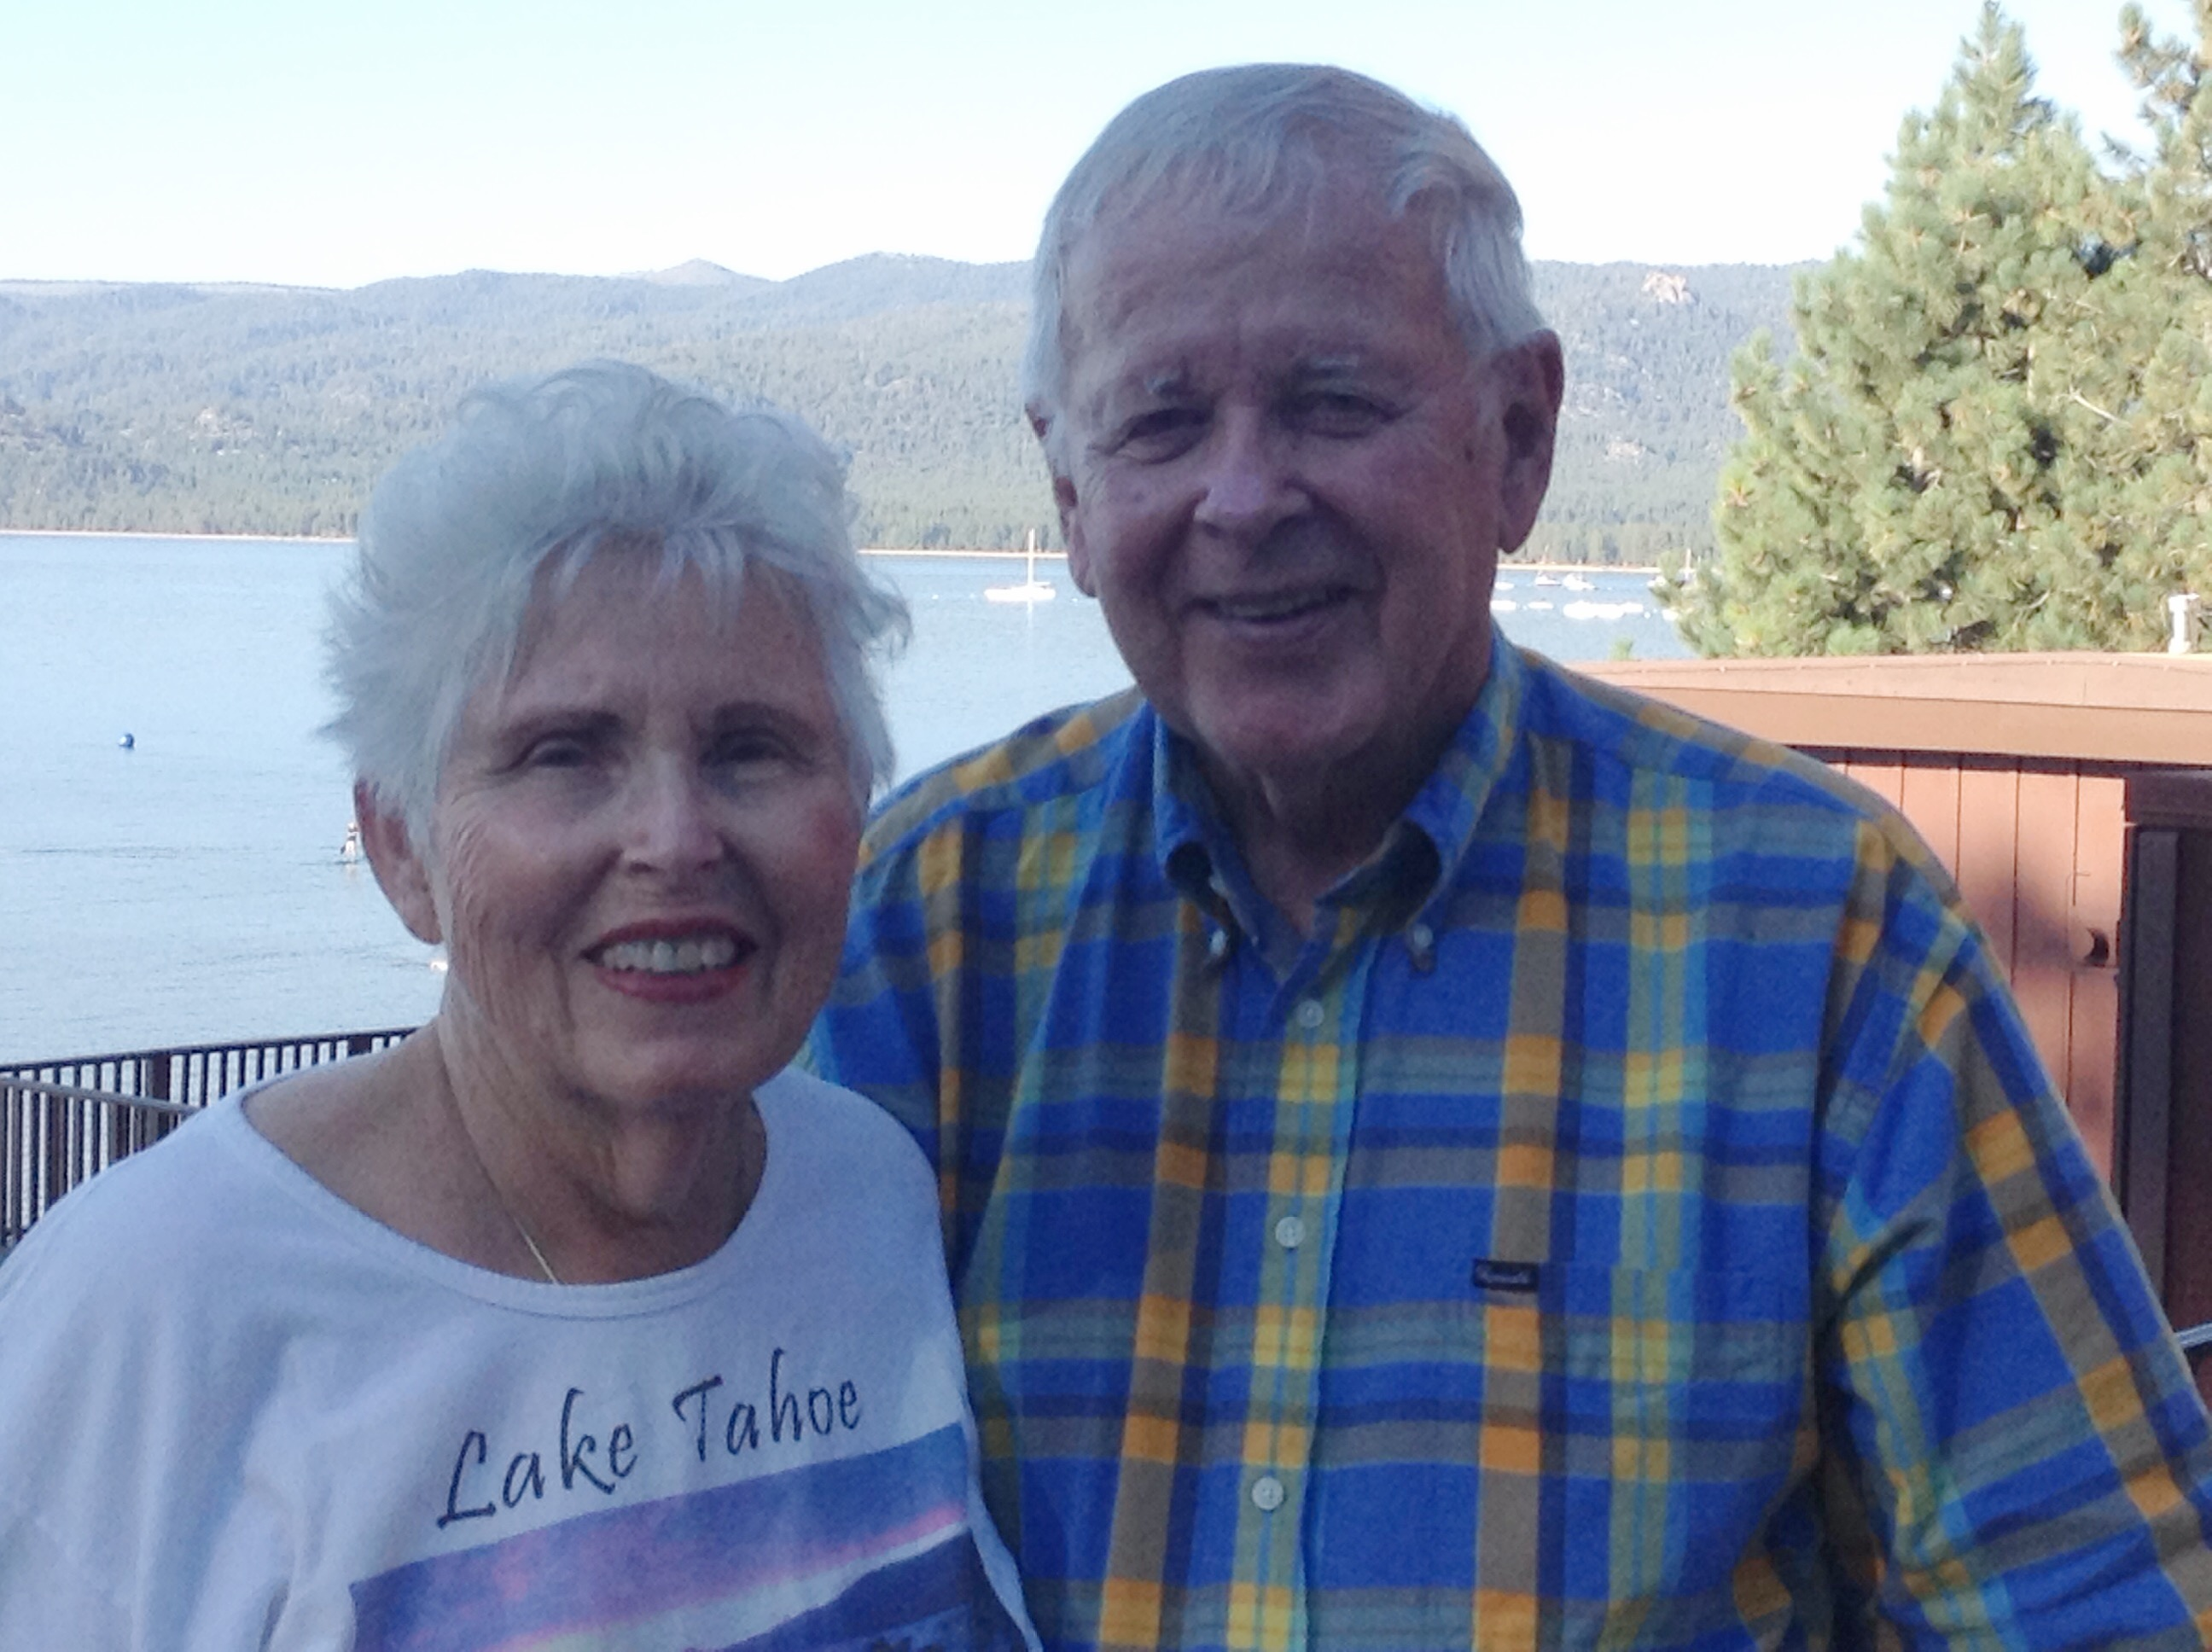 Hunter and his wife celebrating their 60 year anniversary in Tahoe in 2020